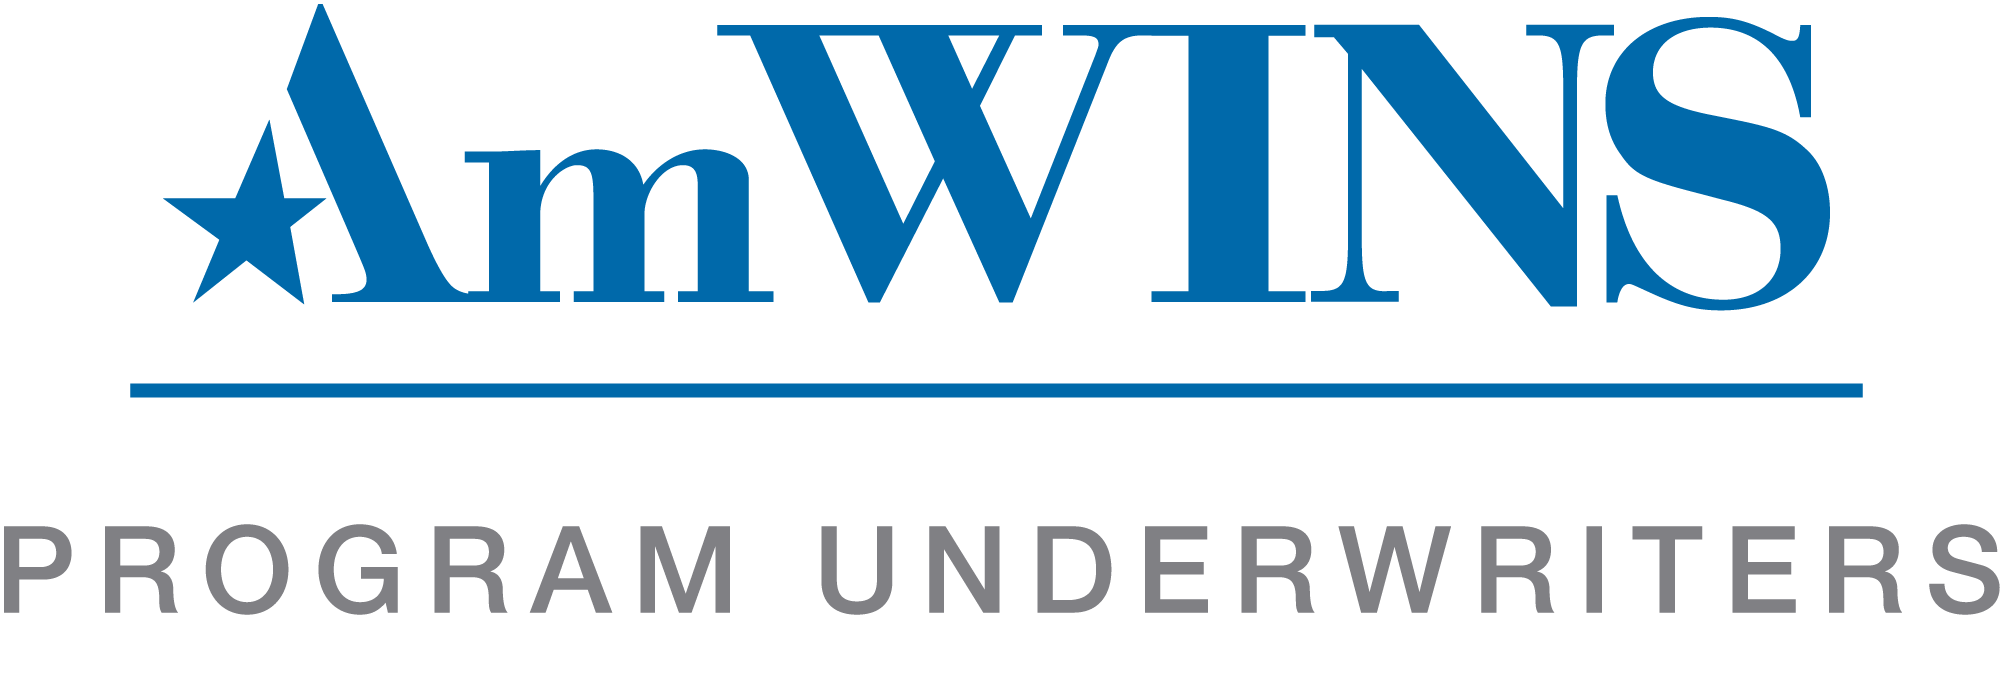 AmWINS-Program-Underwriters-notag.png